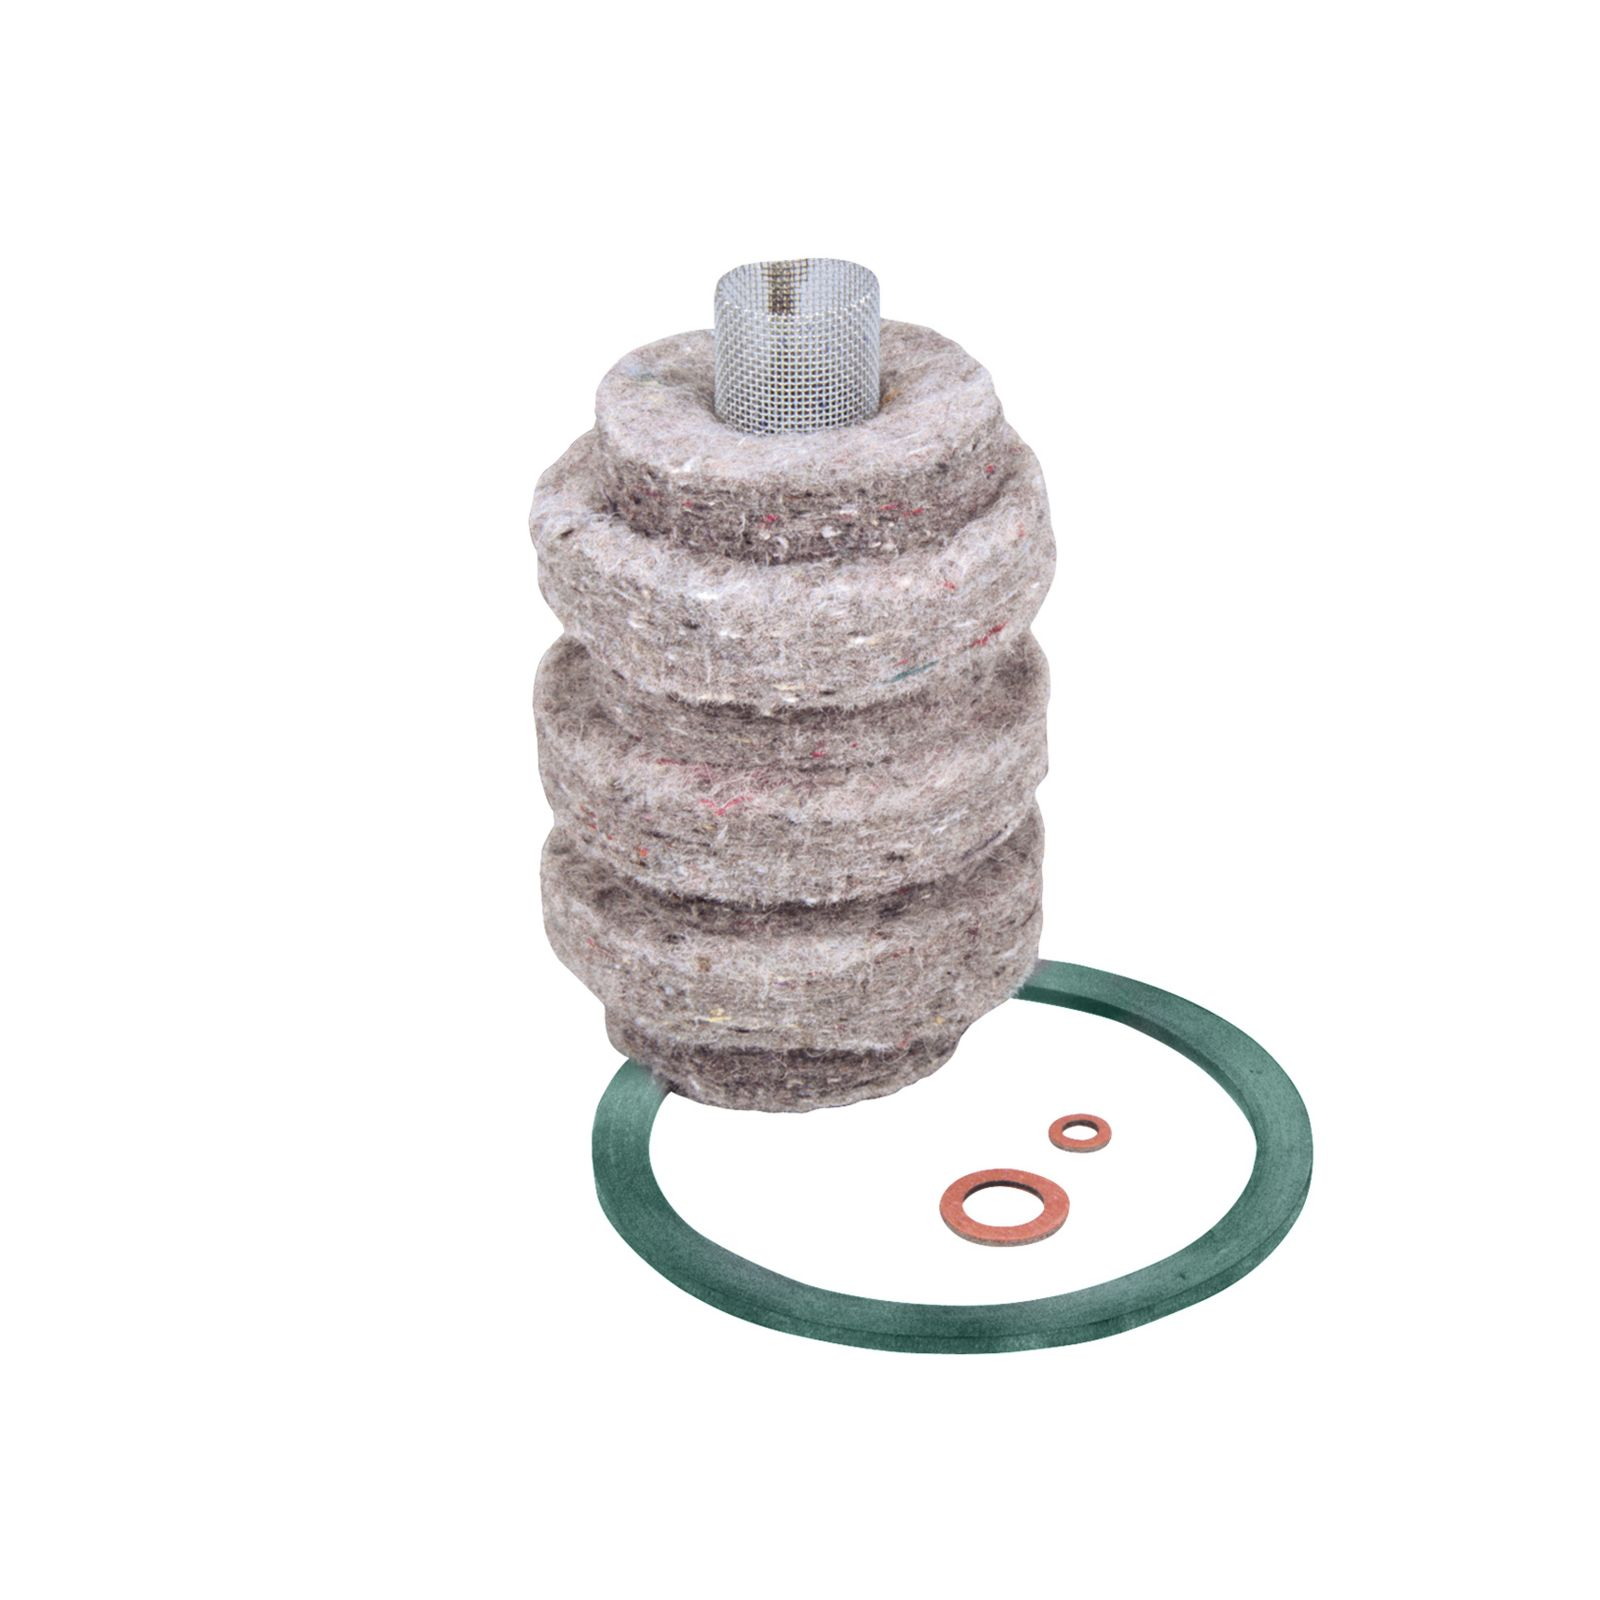 General Filters 2000 - Model 1A-30 Wool Felt Replacement Cartridges, 10 GPH Firing Rate at 10 Microns.